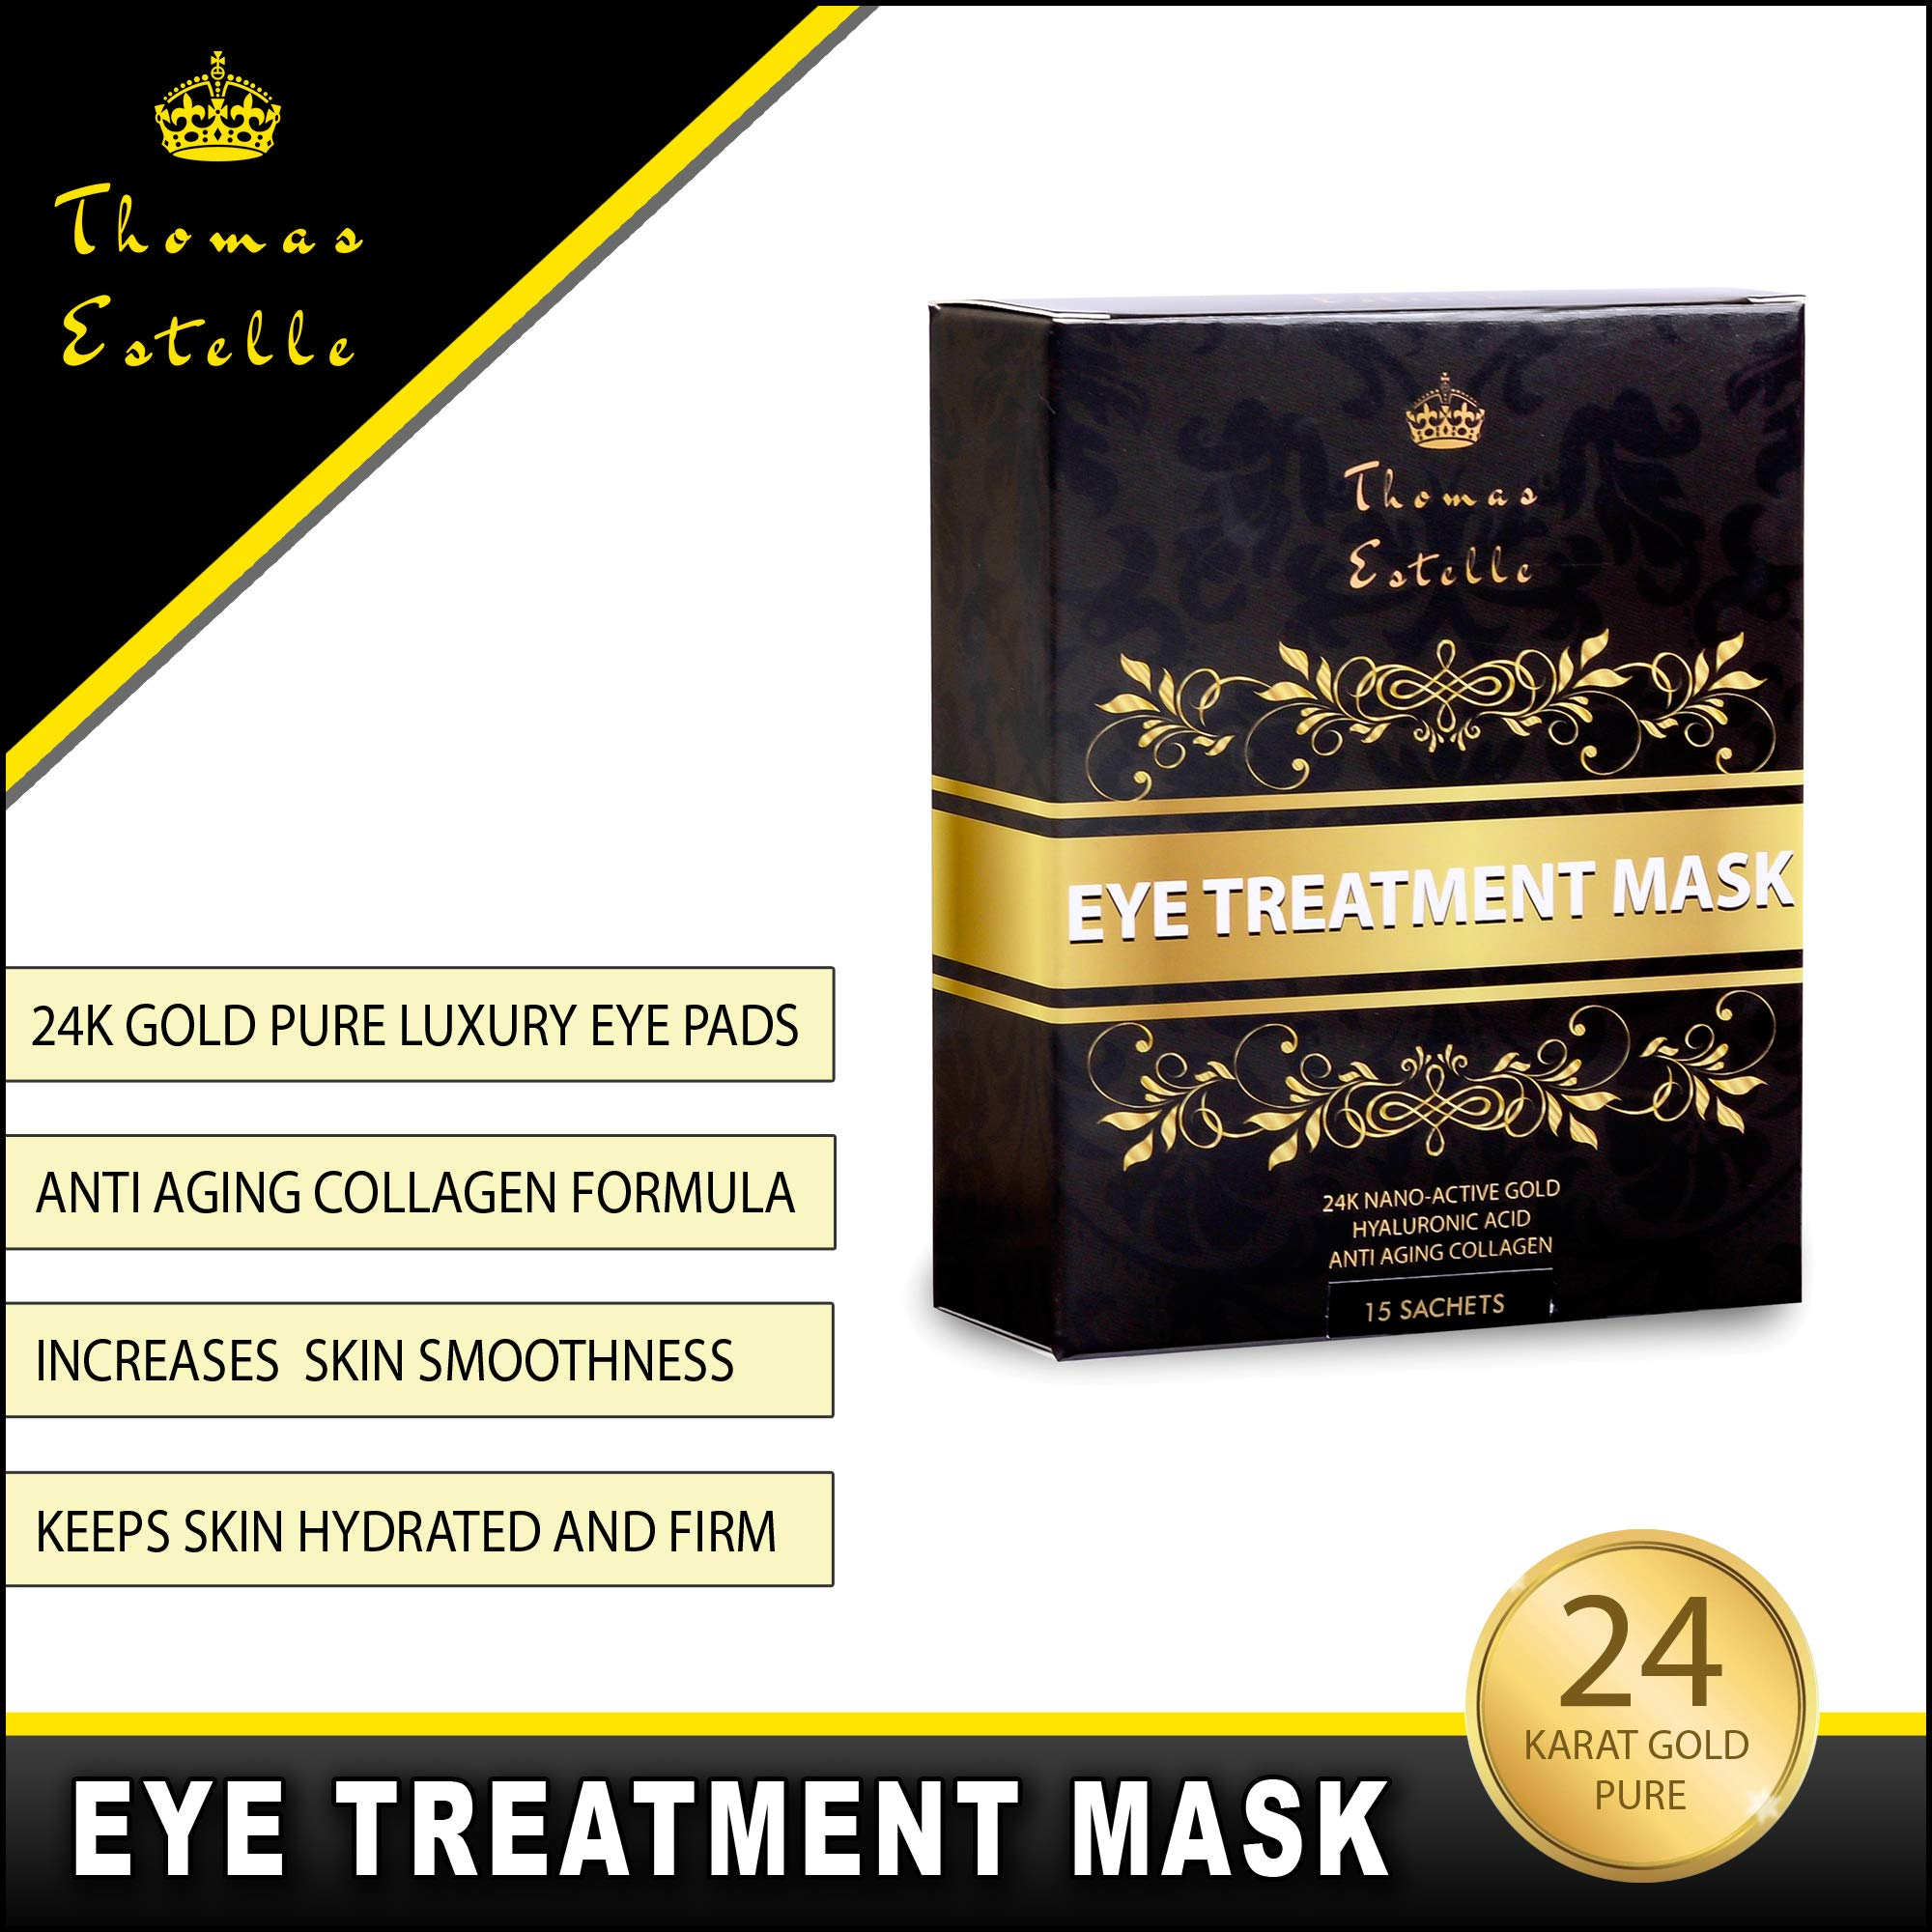 Under Eye Bags Treatment - Gel For Puffiness, Wrinkles, Dark Circles, Crows Feet, Puffy Eyes -24k Gold Luxury - The Best Natural Collagen Mask - Women And Men Masks - Anti Aging Moisturizer Pads by Thomas Estelle (Image #1)